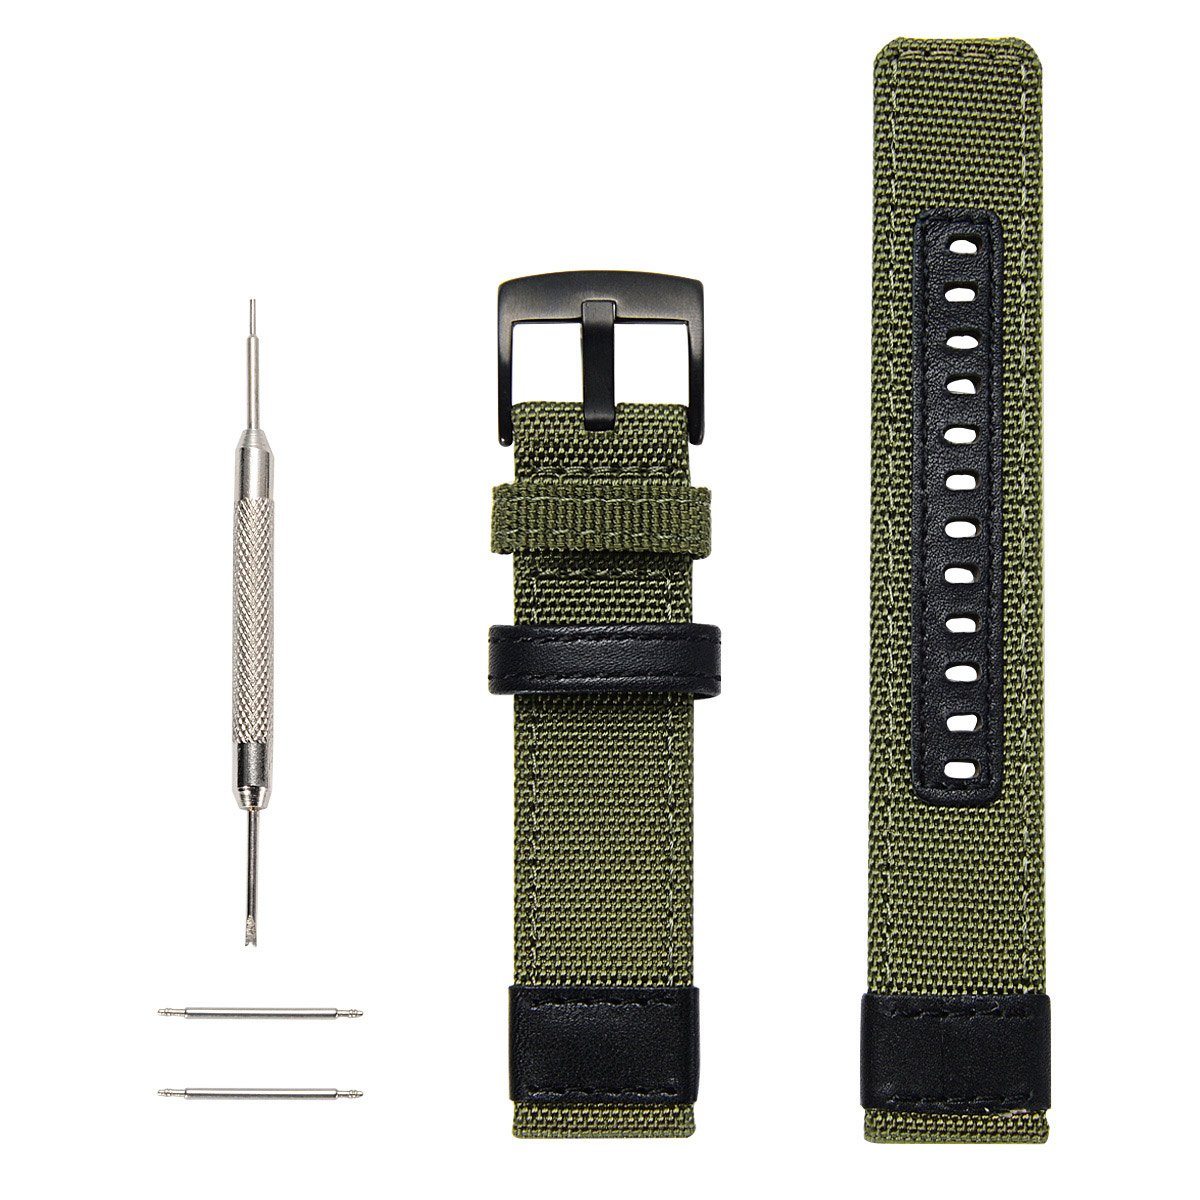 Gear S3 Bands Nylon, Maxjoy S3 Frontier Classic Band 22 mm Woven Nylon Replacement Strap Large Sport Wristband Bracelet with Stainless Steel Metal Buckle for Samsung Gear S3 Smart Watch, Army Green by Maxjoy (Image #4)